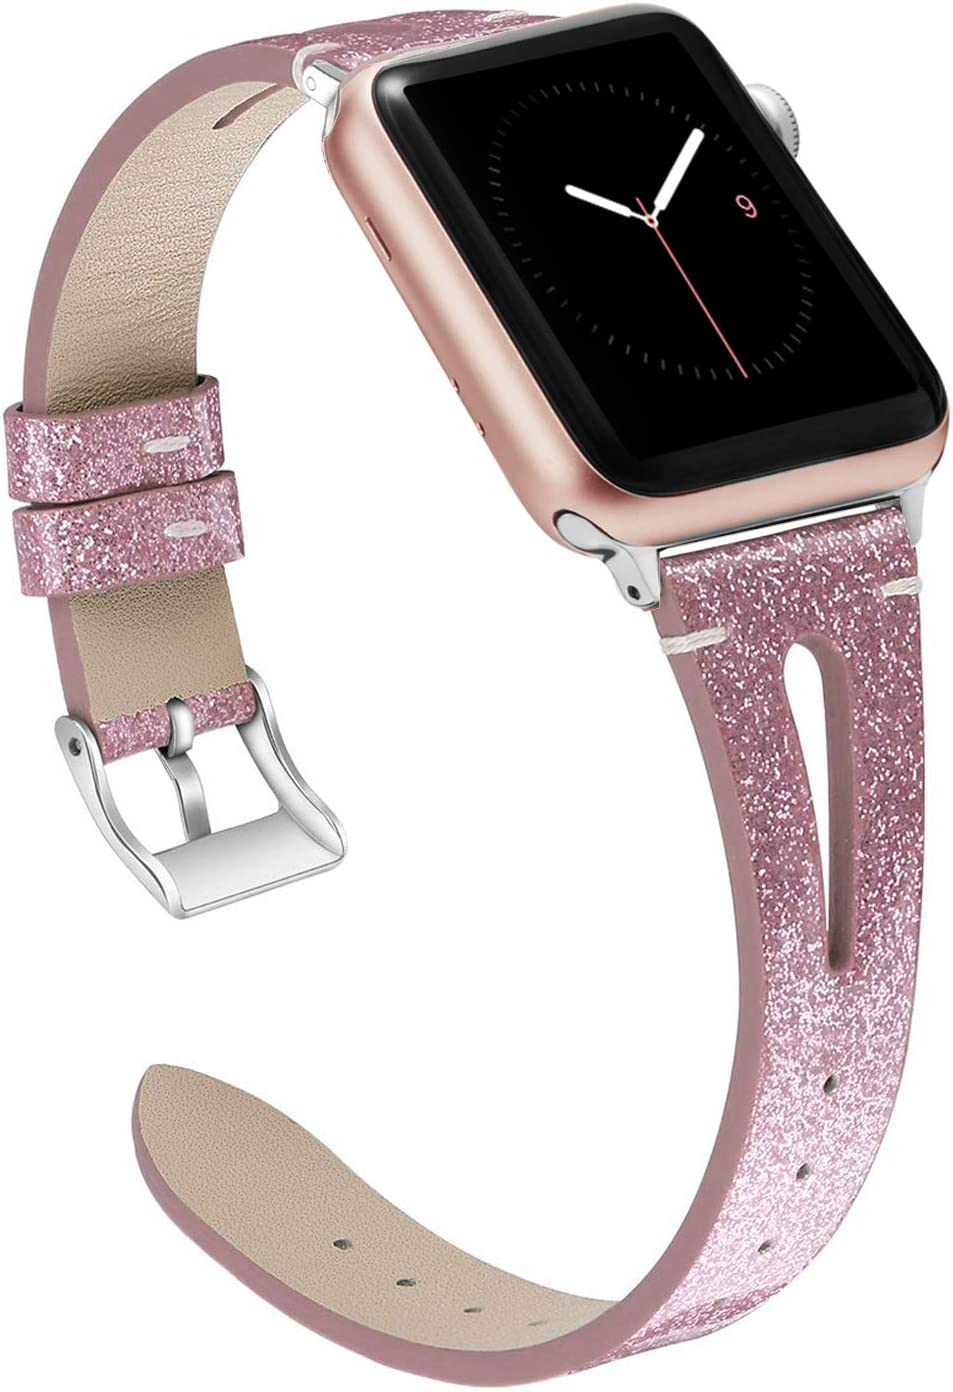 Wearlizer Leather Bands Compatible with Apple Watch Glitter Straps 38mm 40mm for iWatch SE Womens Bling Wristband Triangle Hole Replacement (Metal Silver Buckle) Series 6 5 4 3 2 1 Sport-Purple